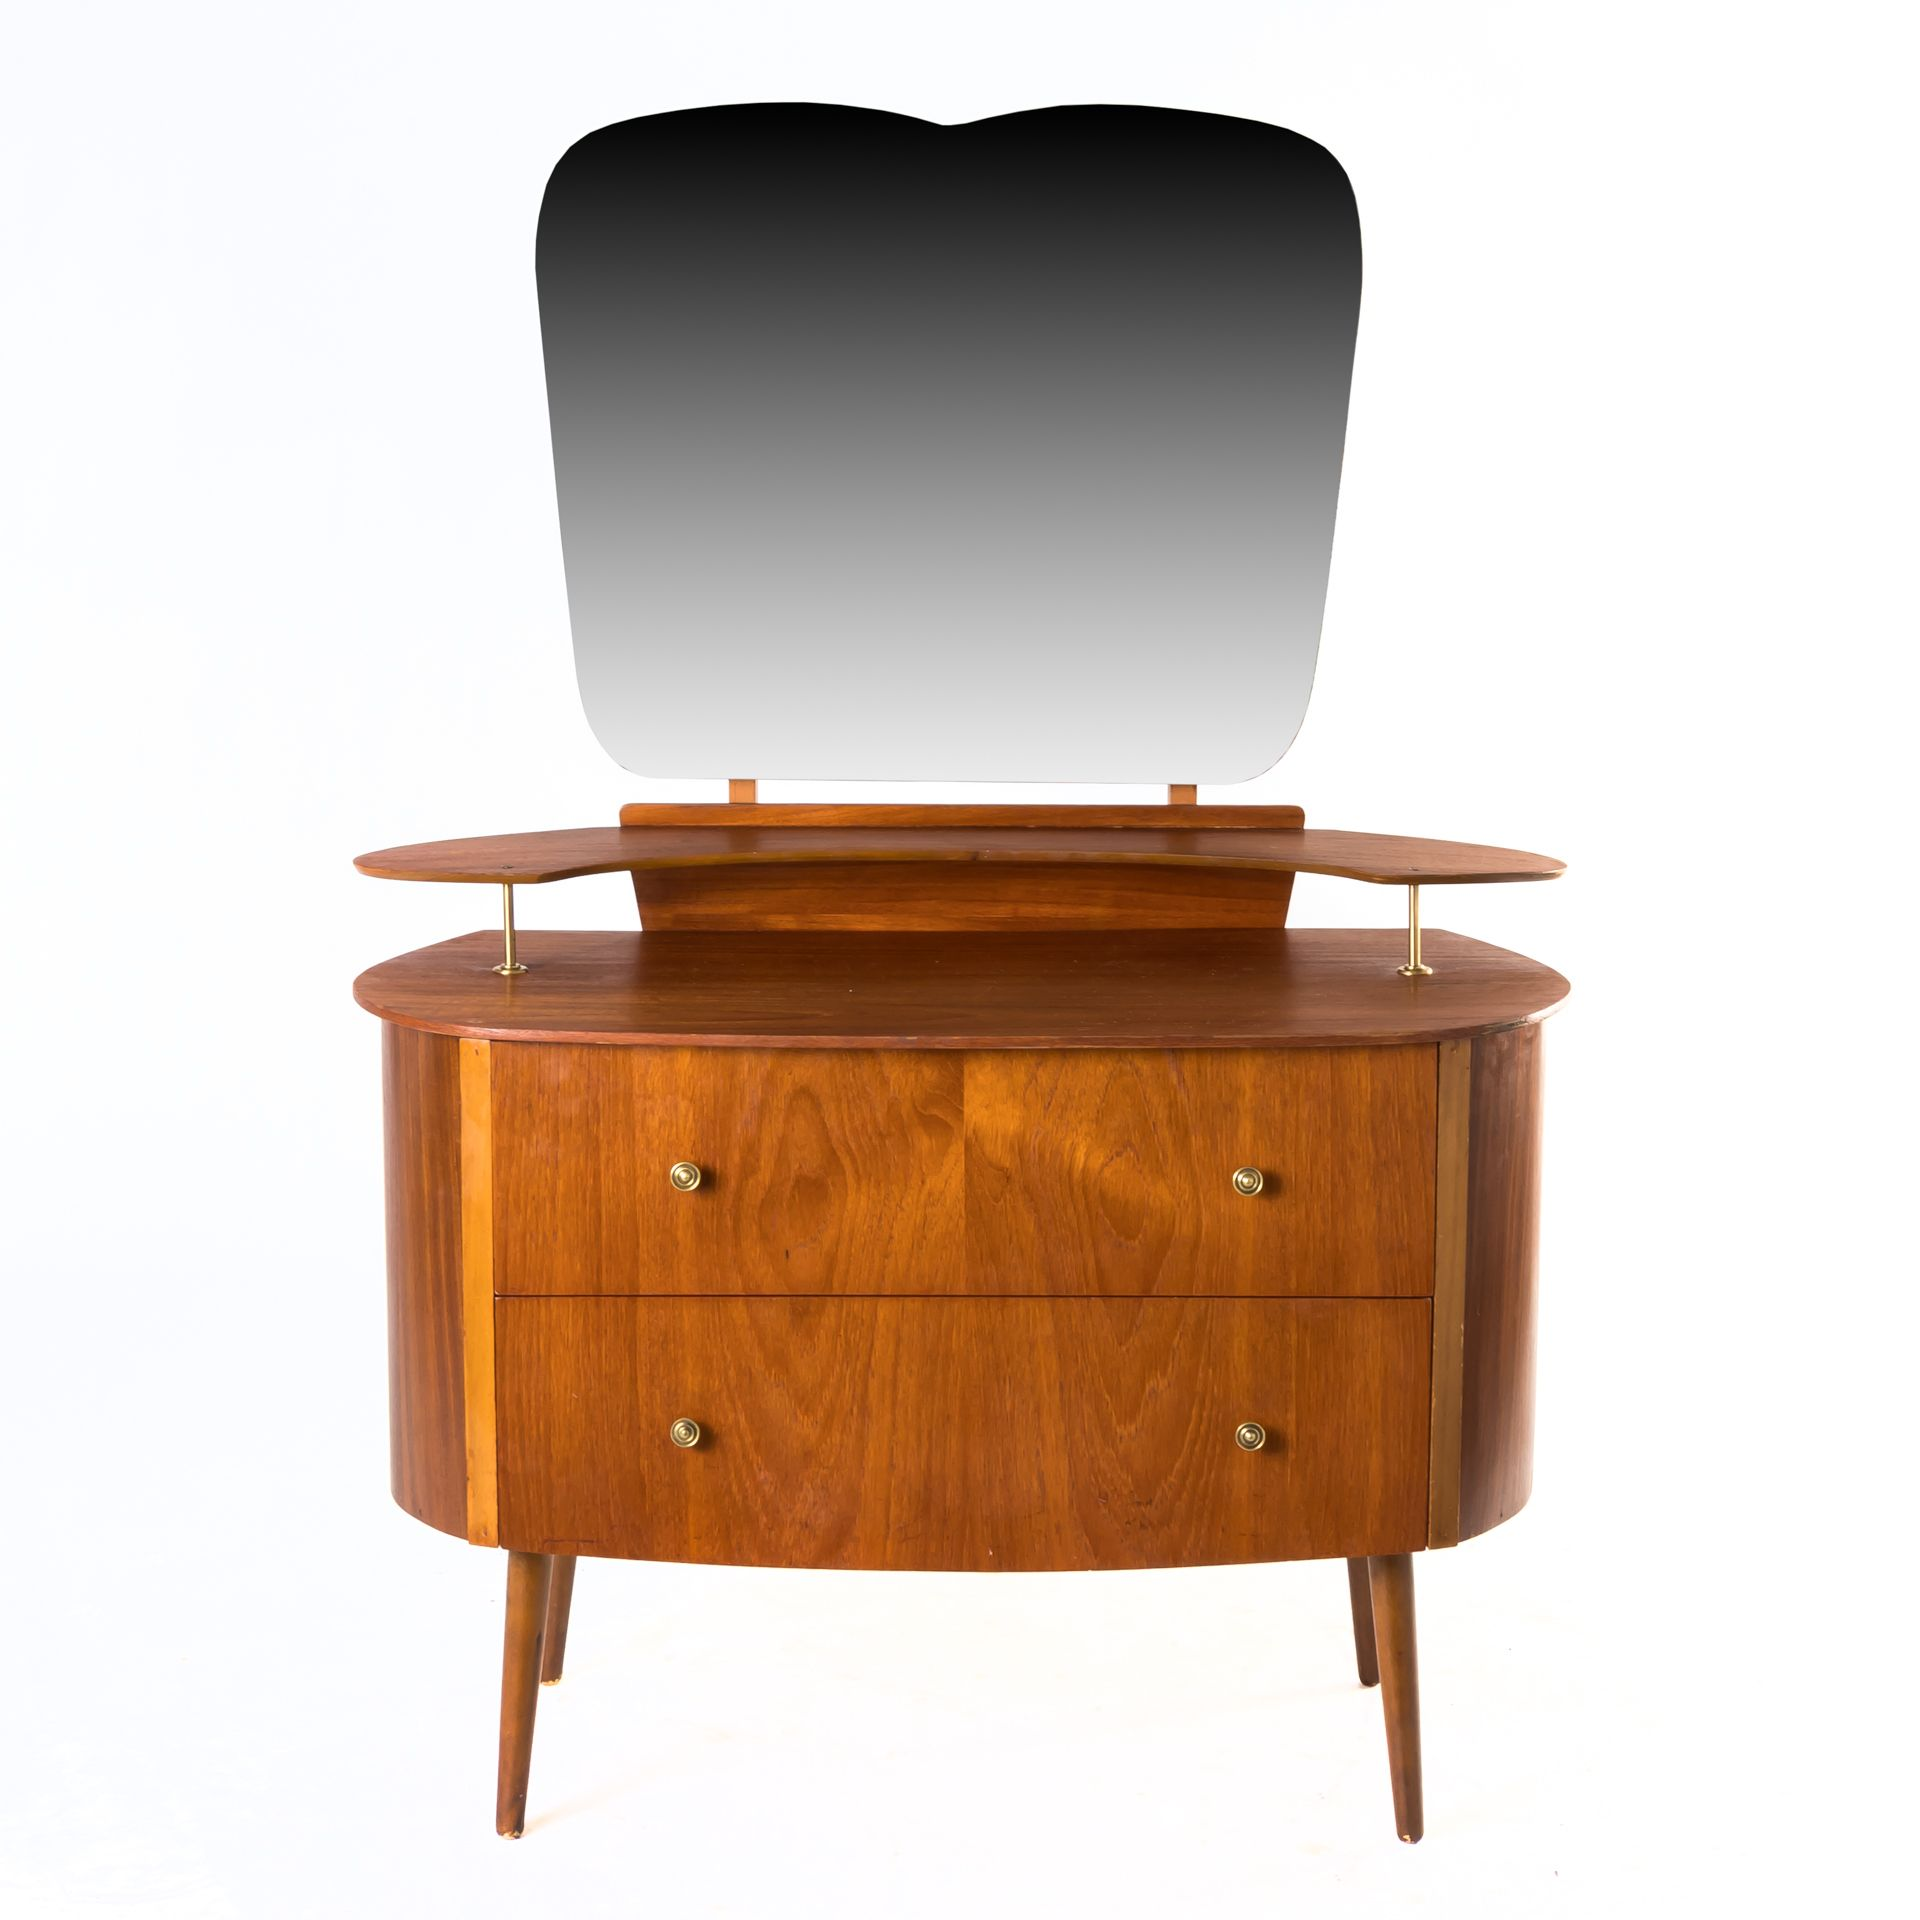 Small mid century modern vanity is adorably quaint in its atomic